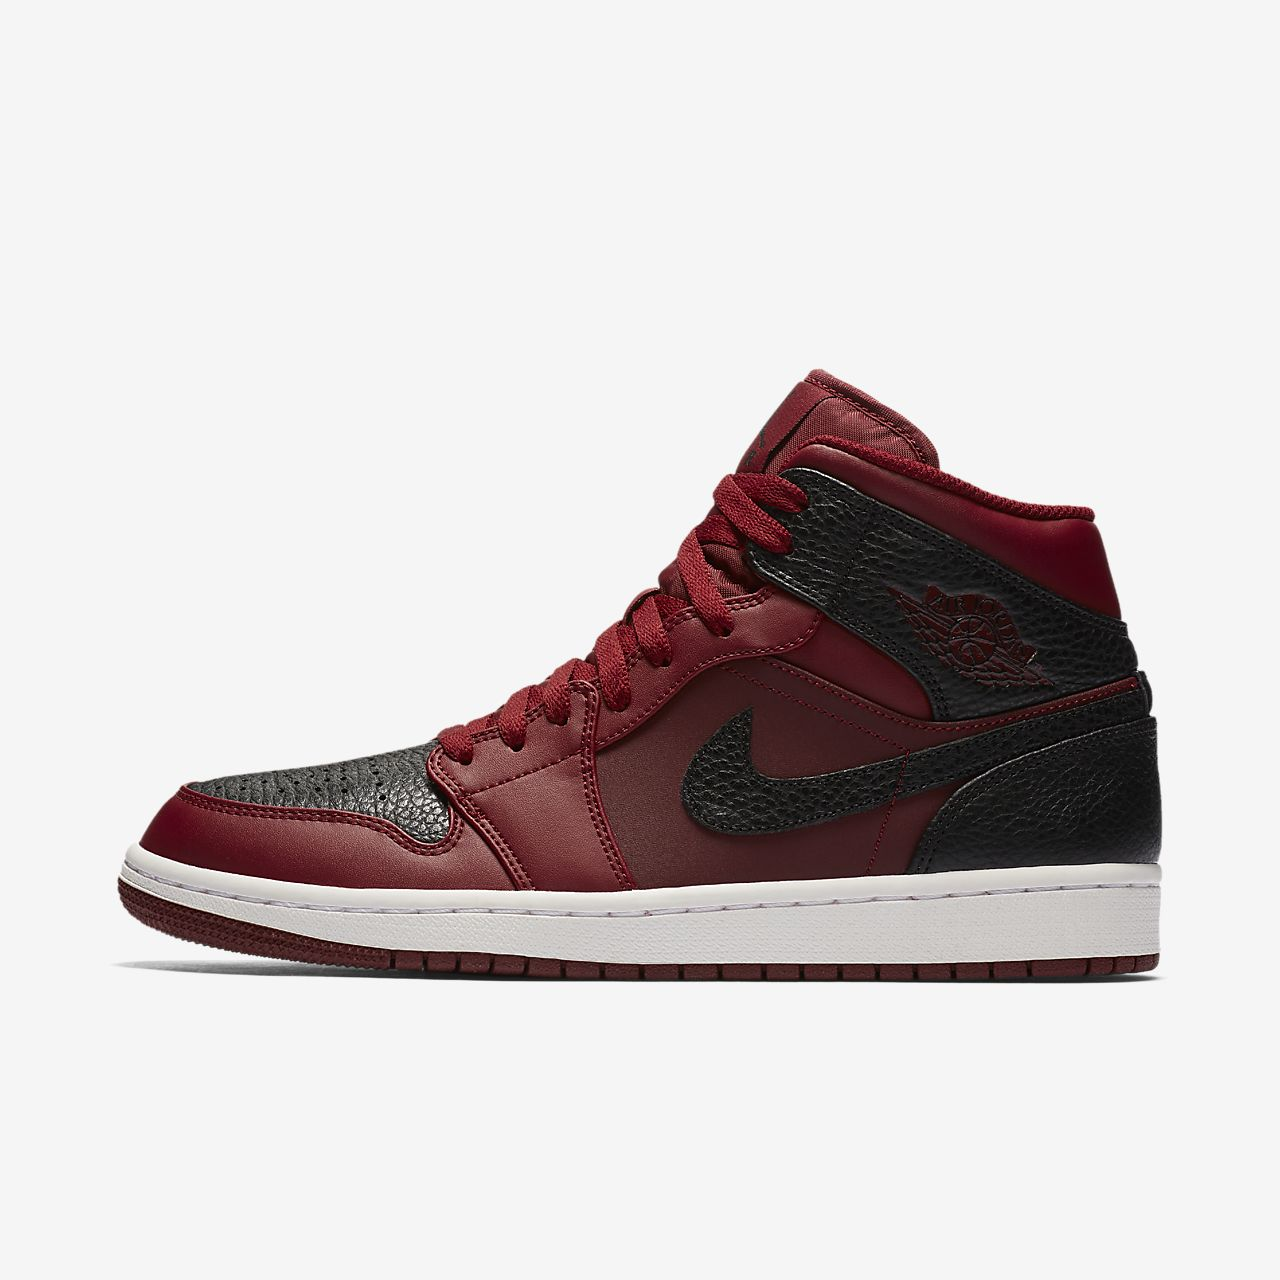 watch 37900 770b1 nike air jordan mid 1 NUM- cPM3